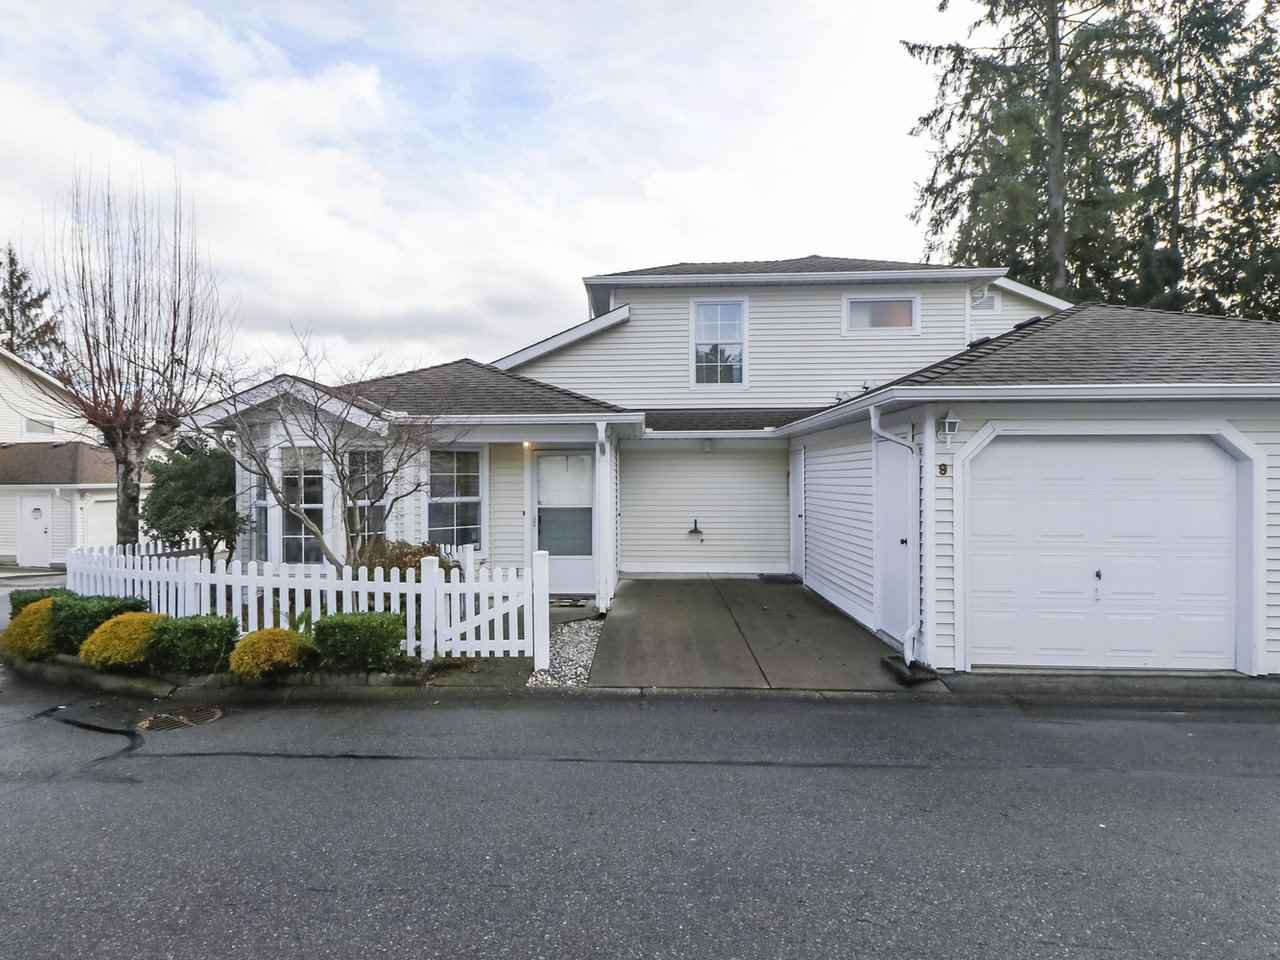 """Main Photo: 9 6537 138 Street in Surrey: East Newton Townhouse for sale in """"CHARLESTON GREEN"""" : MLS®# R2432137"""